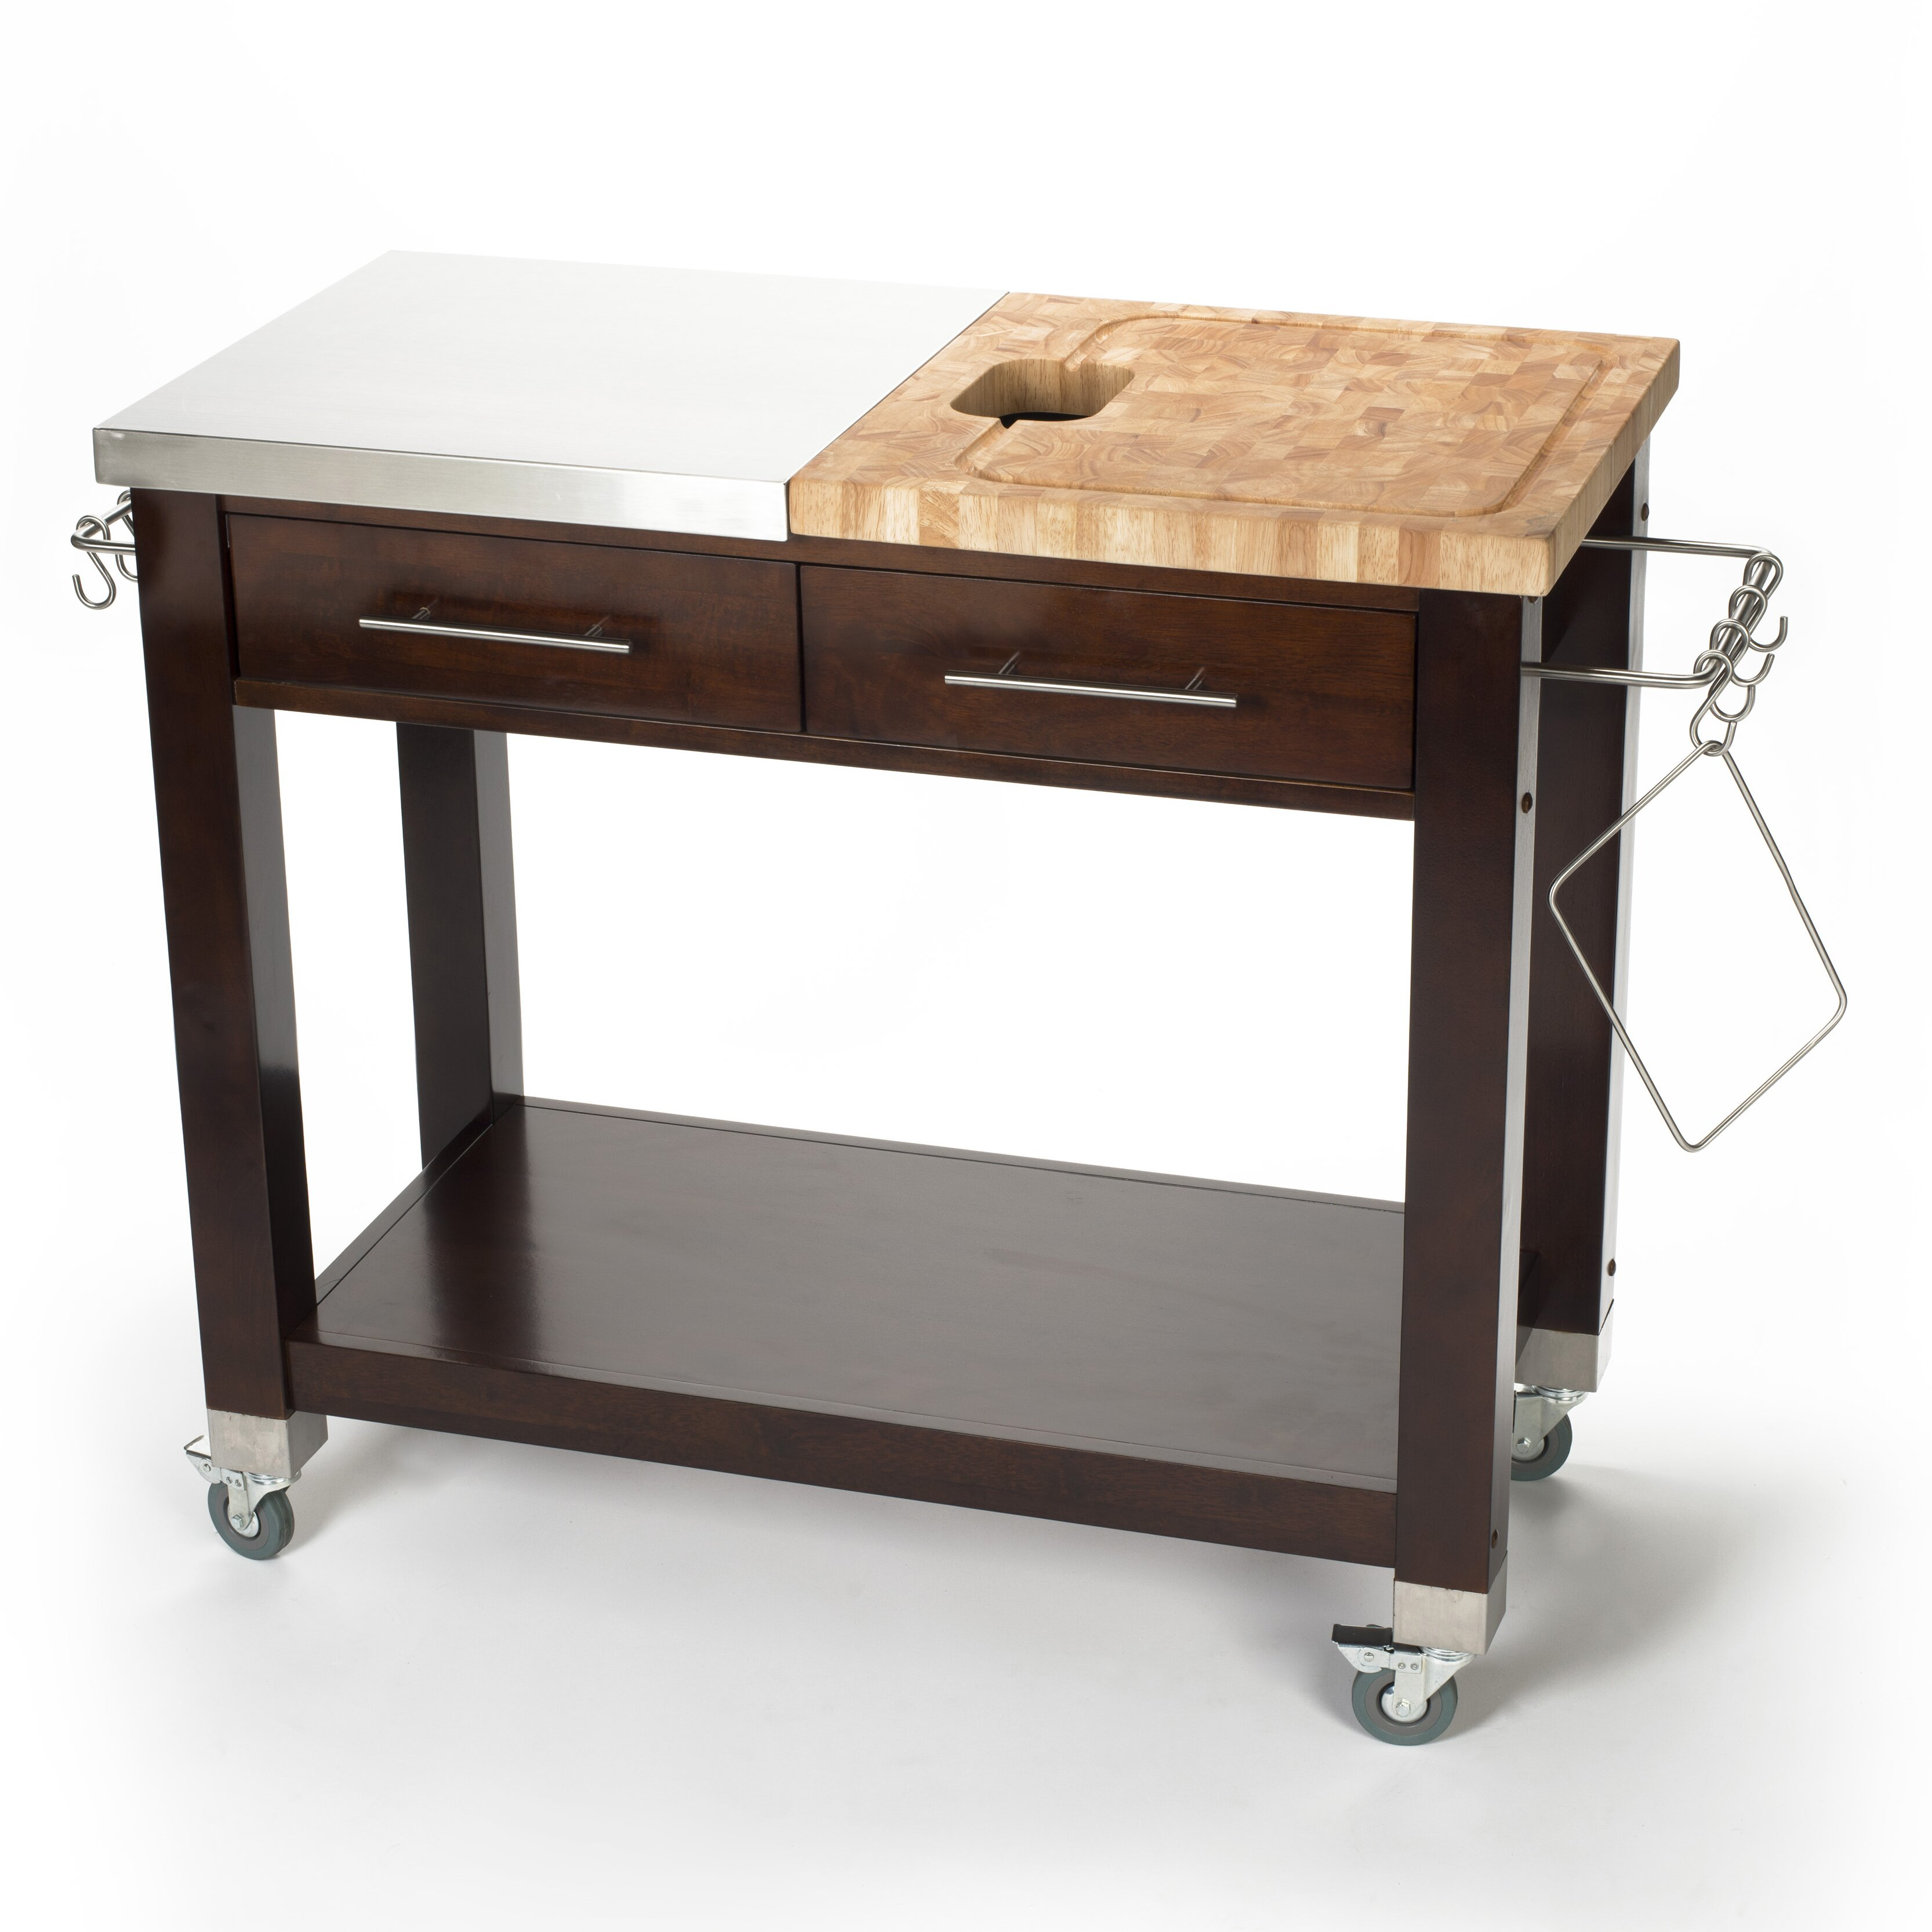 marvelous Kitchen Island With Chopping Block Top #7: Chris u0026amp; Chris Pro Chef Kitchen Island with Butcher Block Top